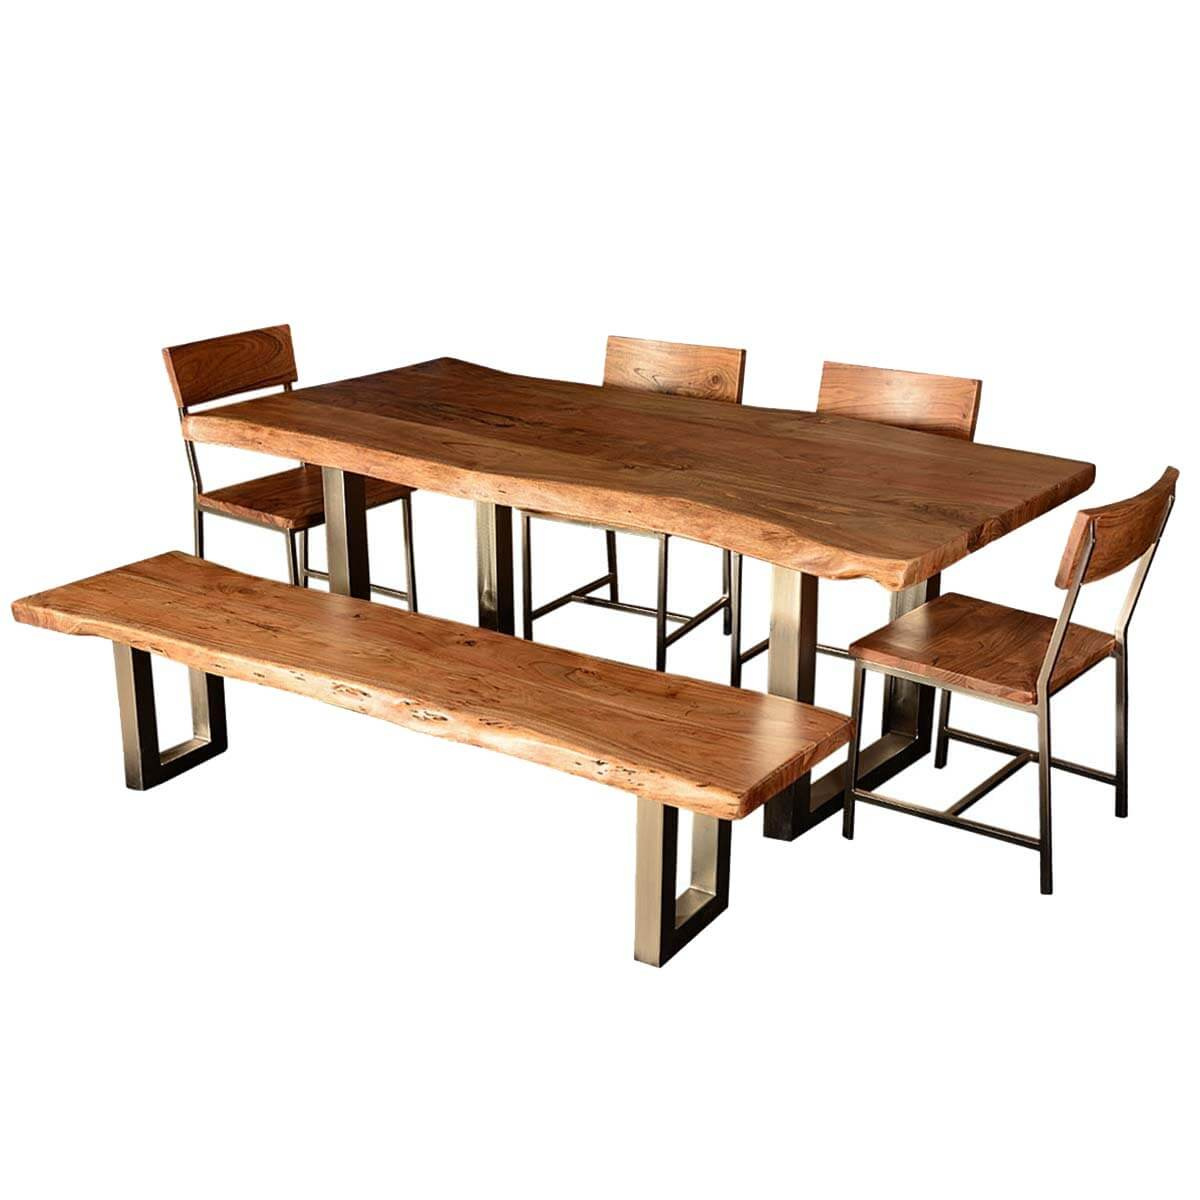 Hankin wood iron base live edge dining table for Dinette sets with bench seating